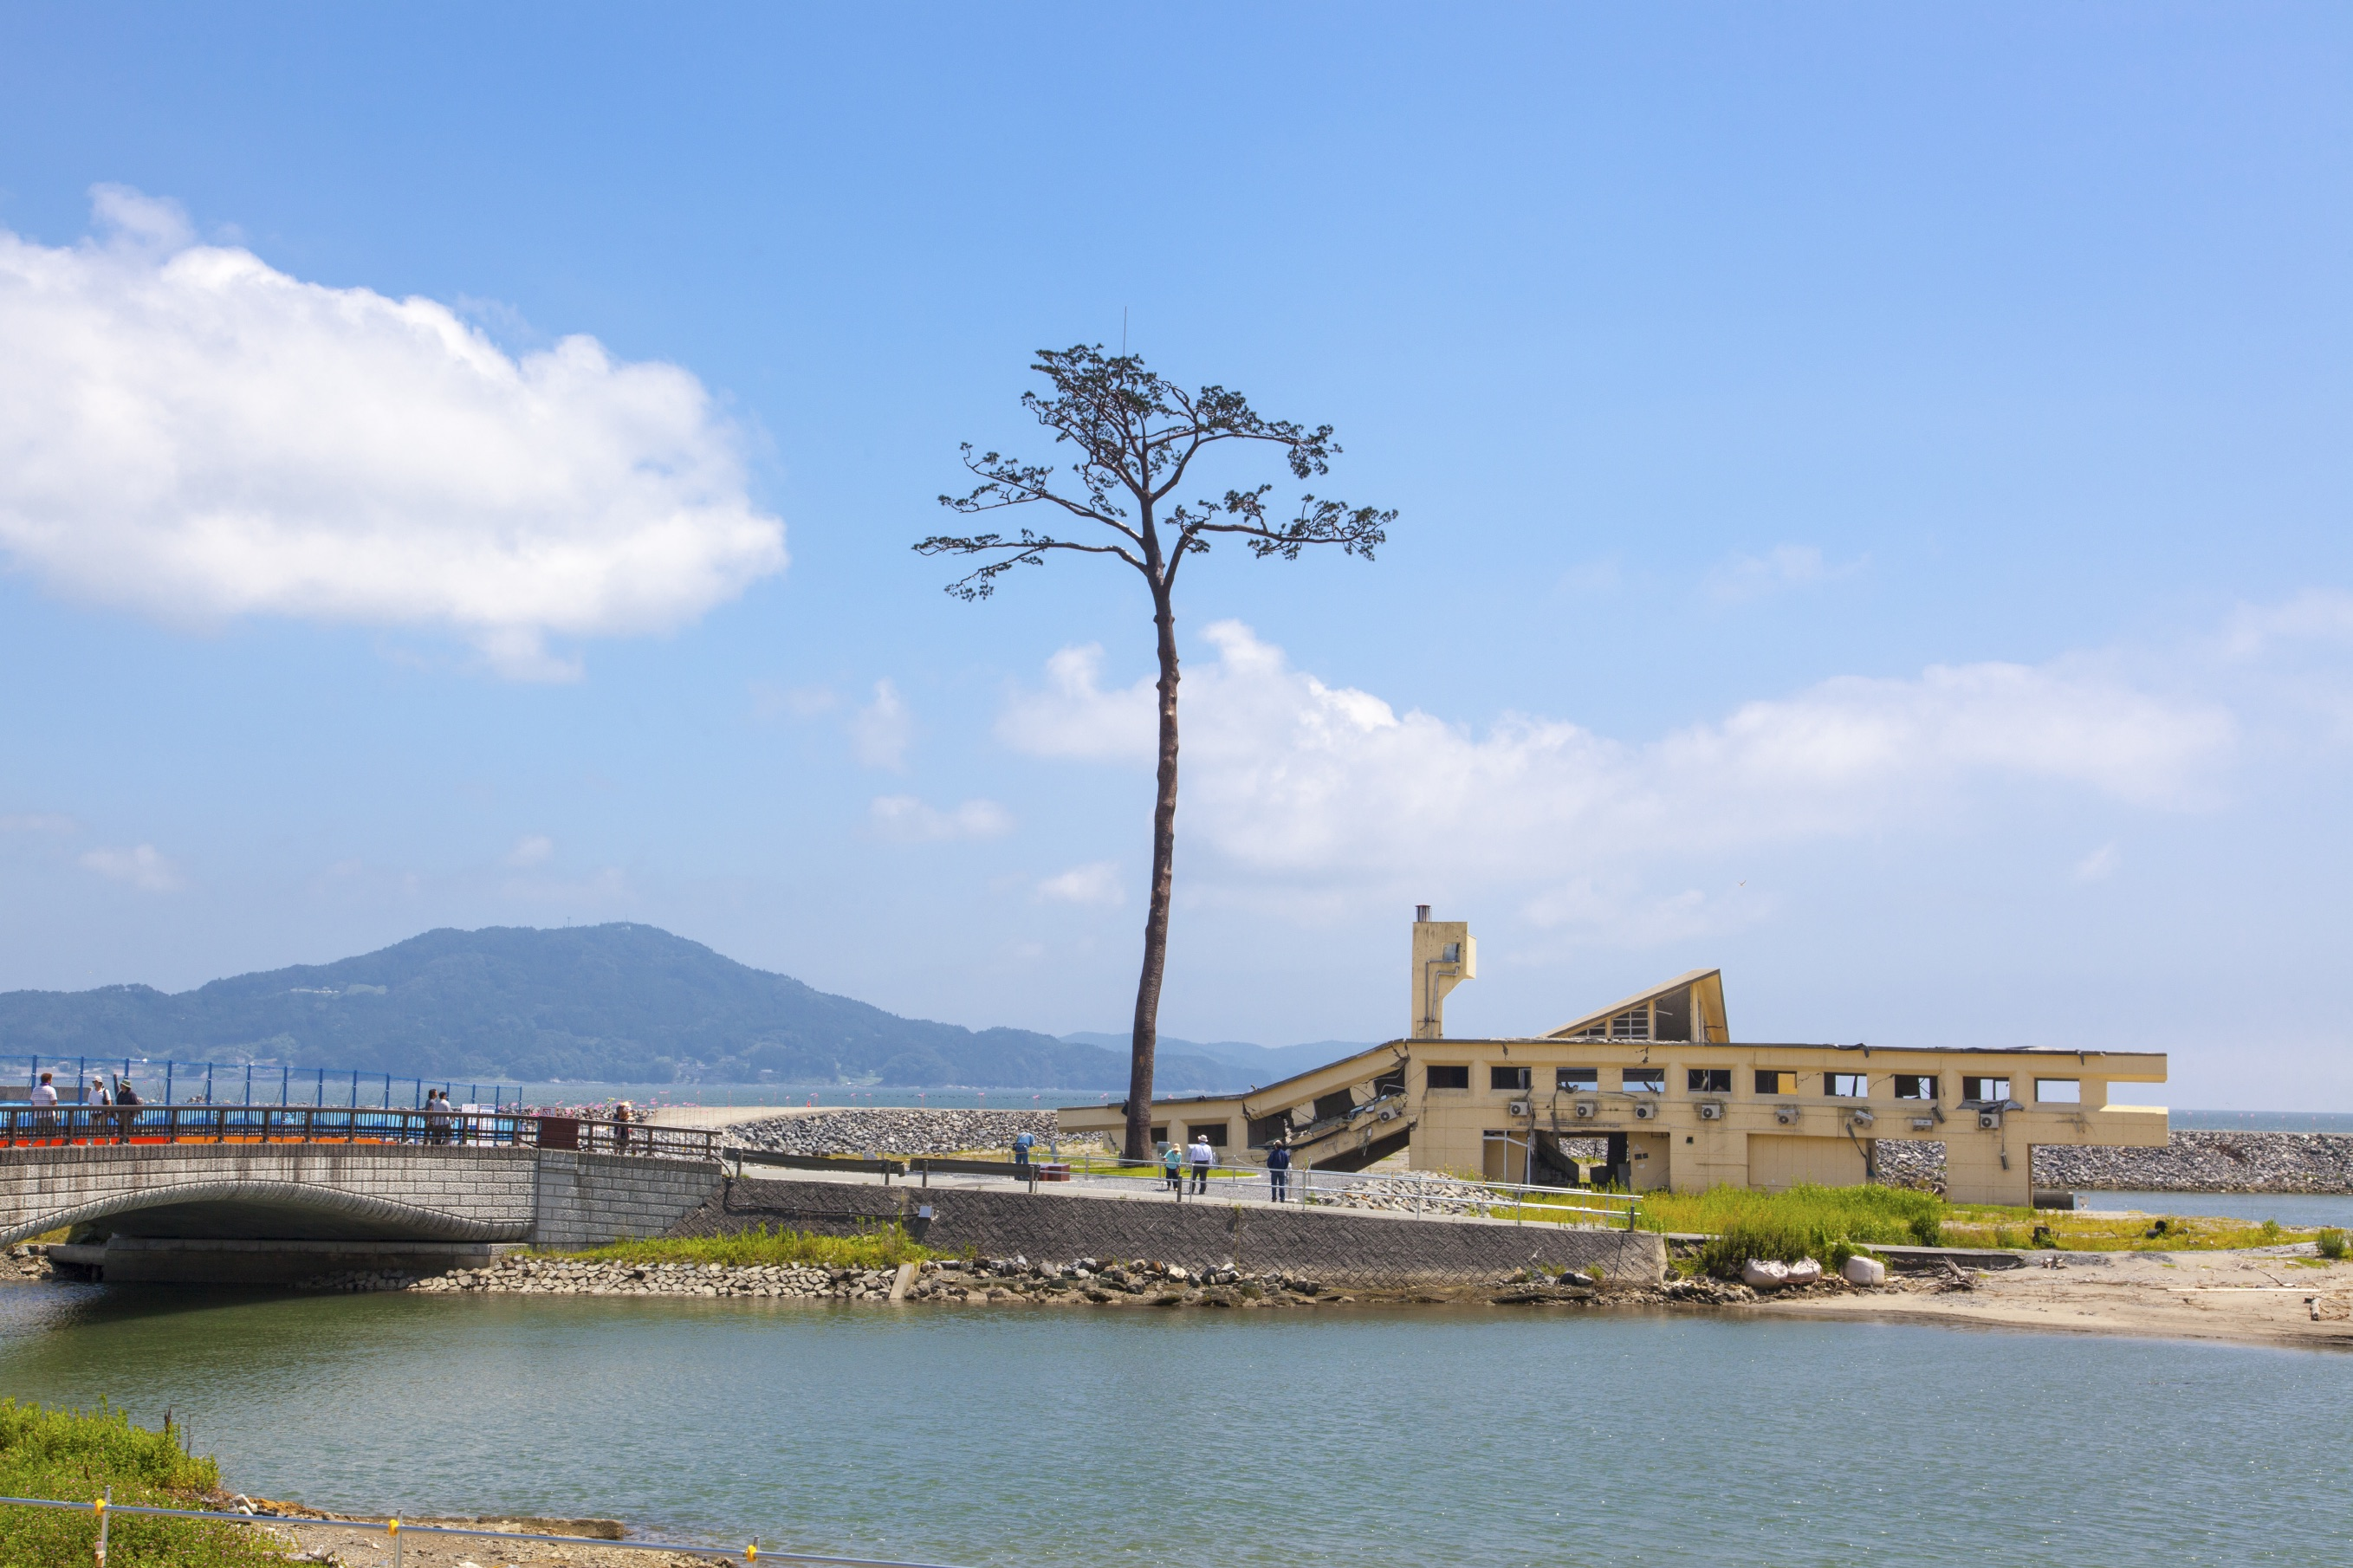 The miracle pine tree in Iwate remains a symbol of hope for those affected by the 2011 tsunami.